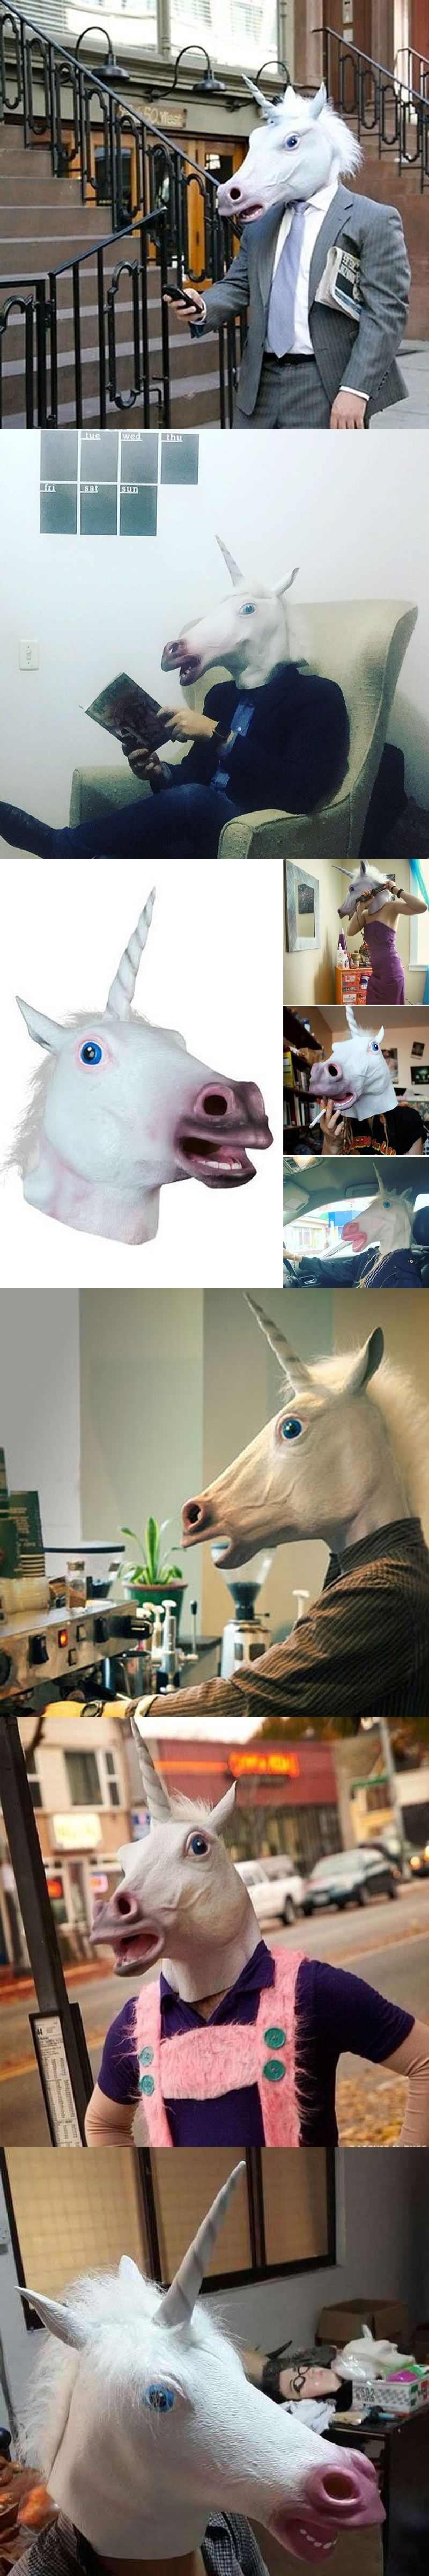 4300647b16fe 2016 Newest Style Unicorn Horse Head Mask Halloween Costume Party Gift Prop  Novelty Masks Latex Rubber